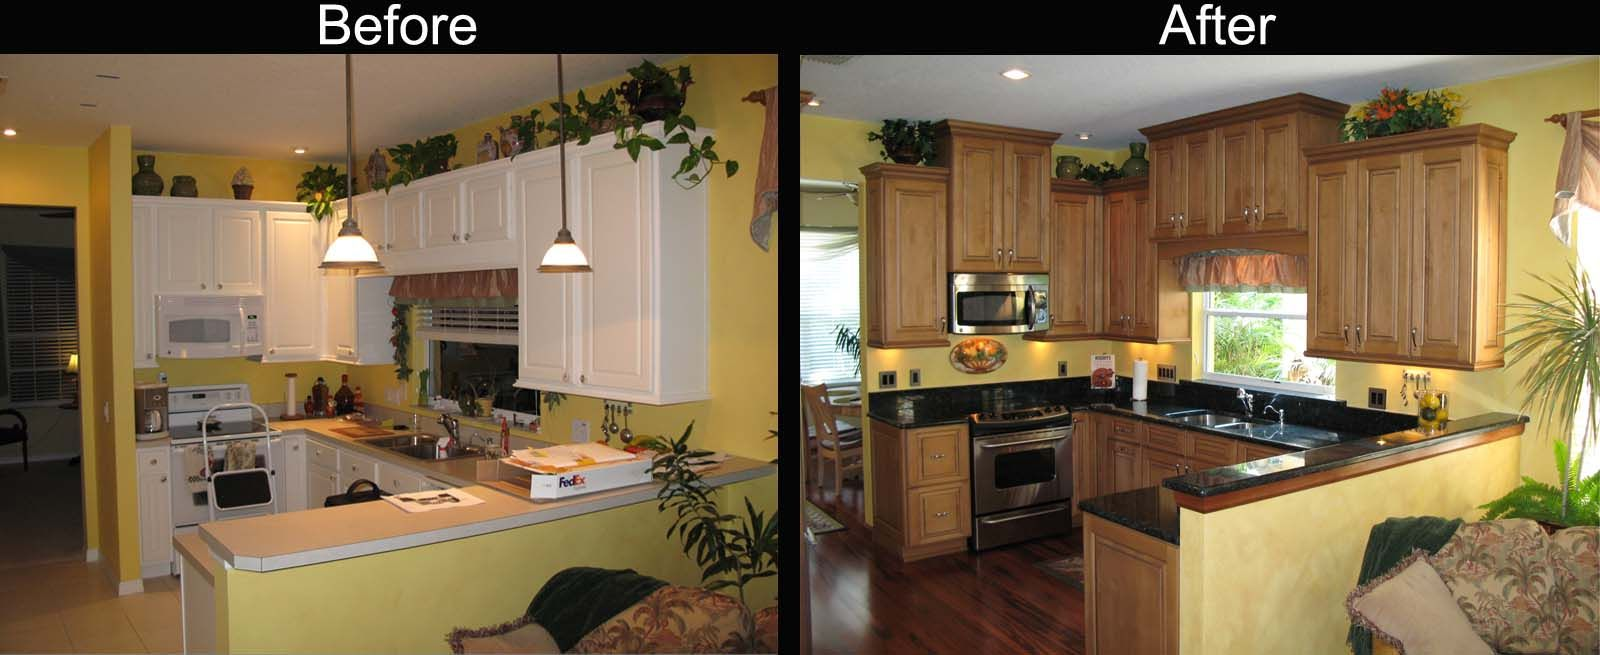 Kitchen Remodel Before And After Painted Cabinets Before And After Ideas For Your Kitchen